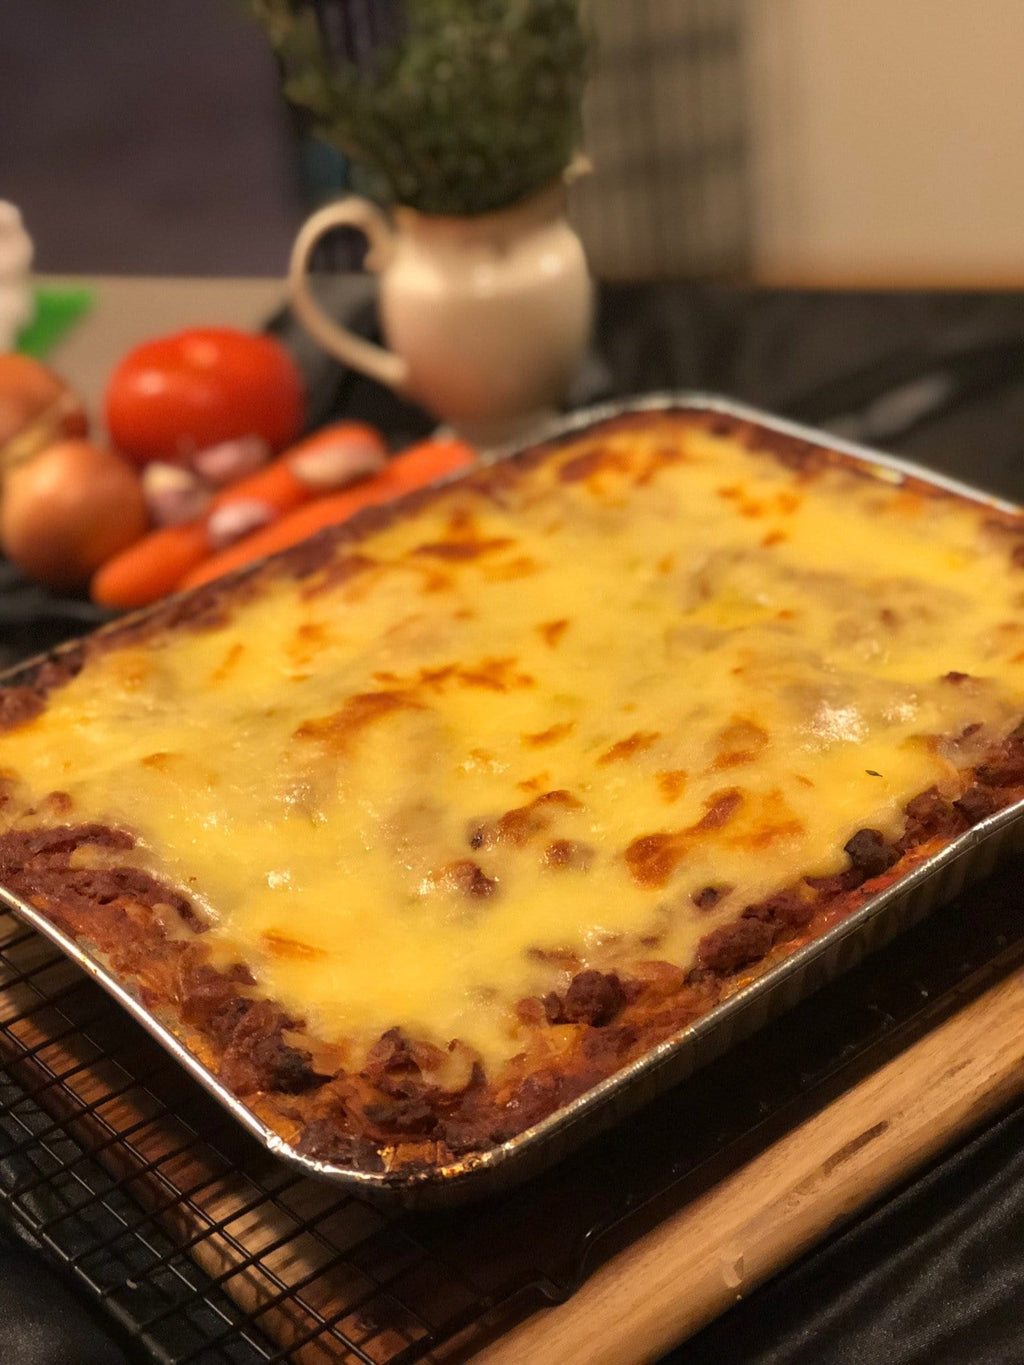 Home cooked lasagne - family size